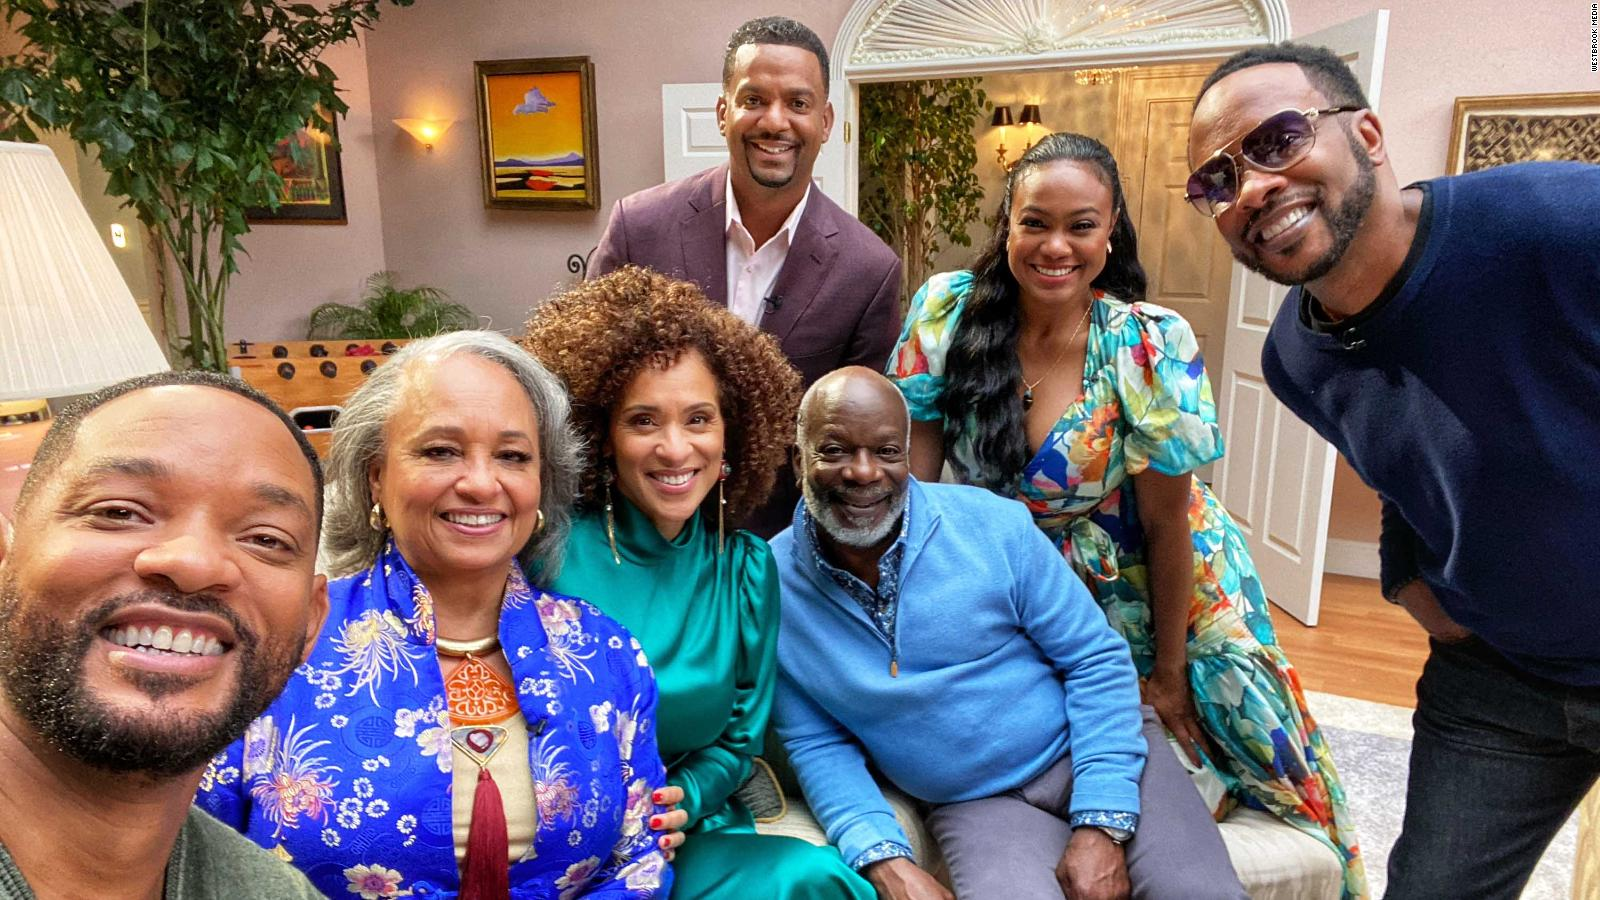 Will Smith Post of Two Aunt Viv's on Instagram Will Leave You Excited For The 'Fresh Prince' Reunion